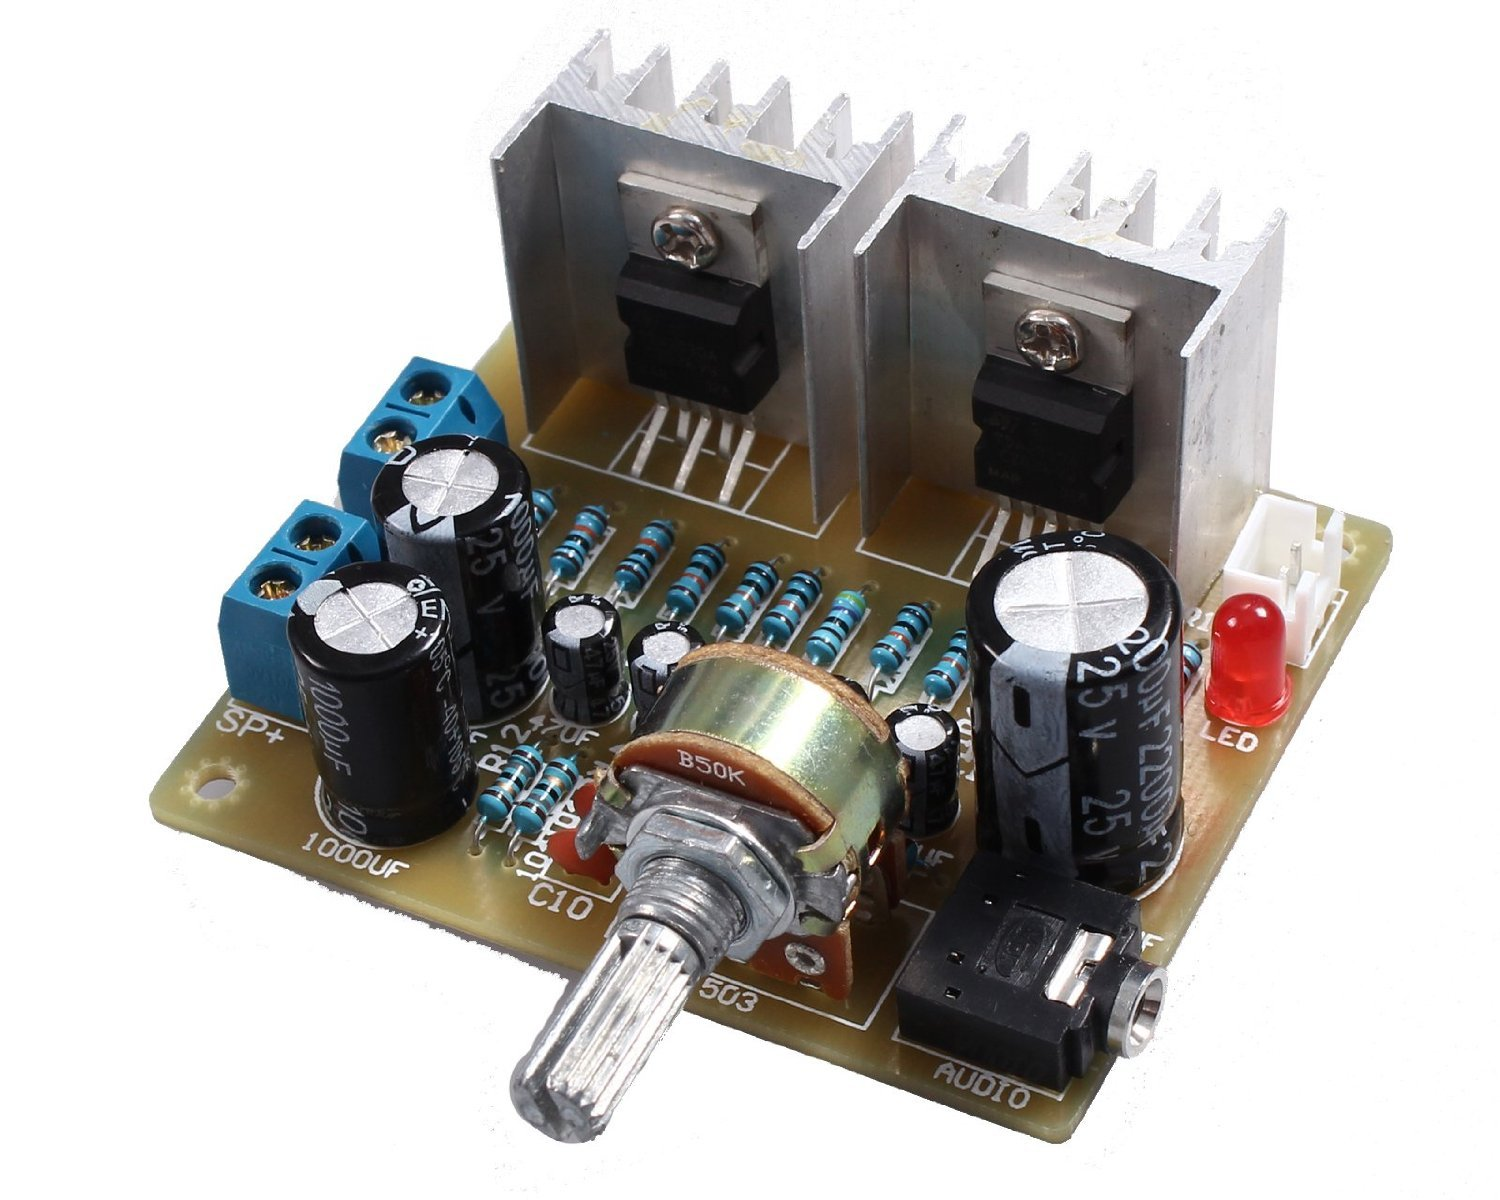 Icstation TDA2030 2X15W Stereo Audio Max 5 popular 62% OFF Kits Electron DIY Amplifier